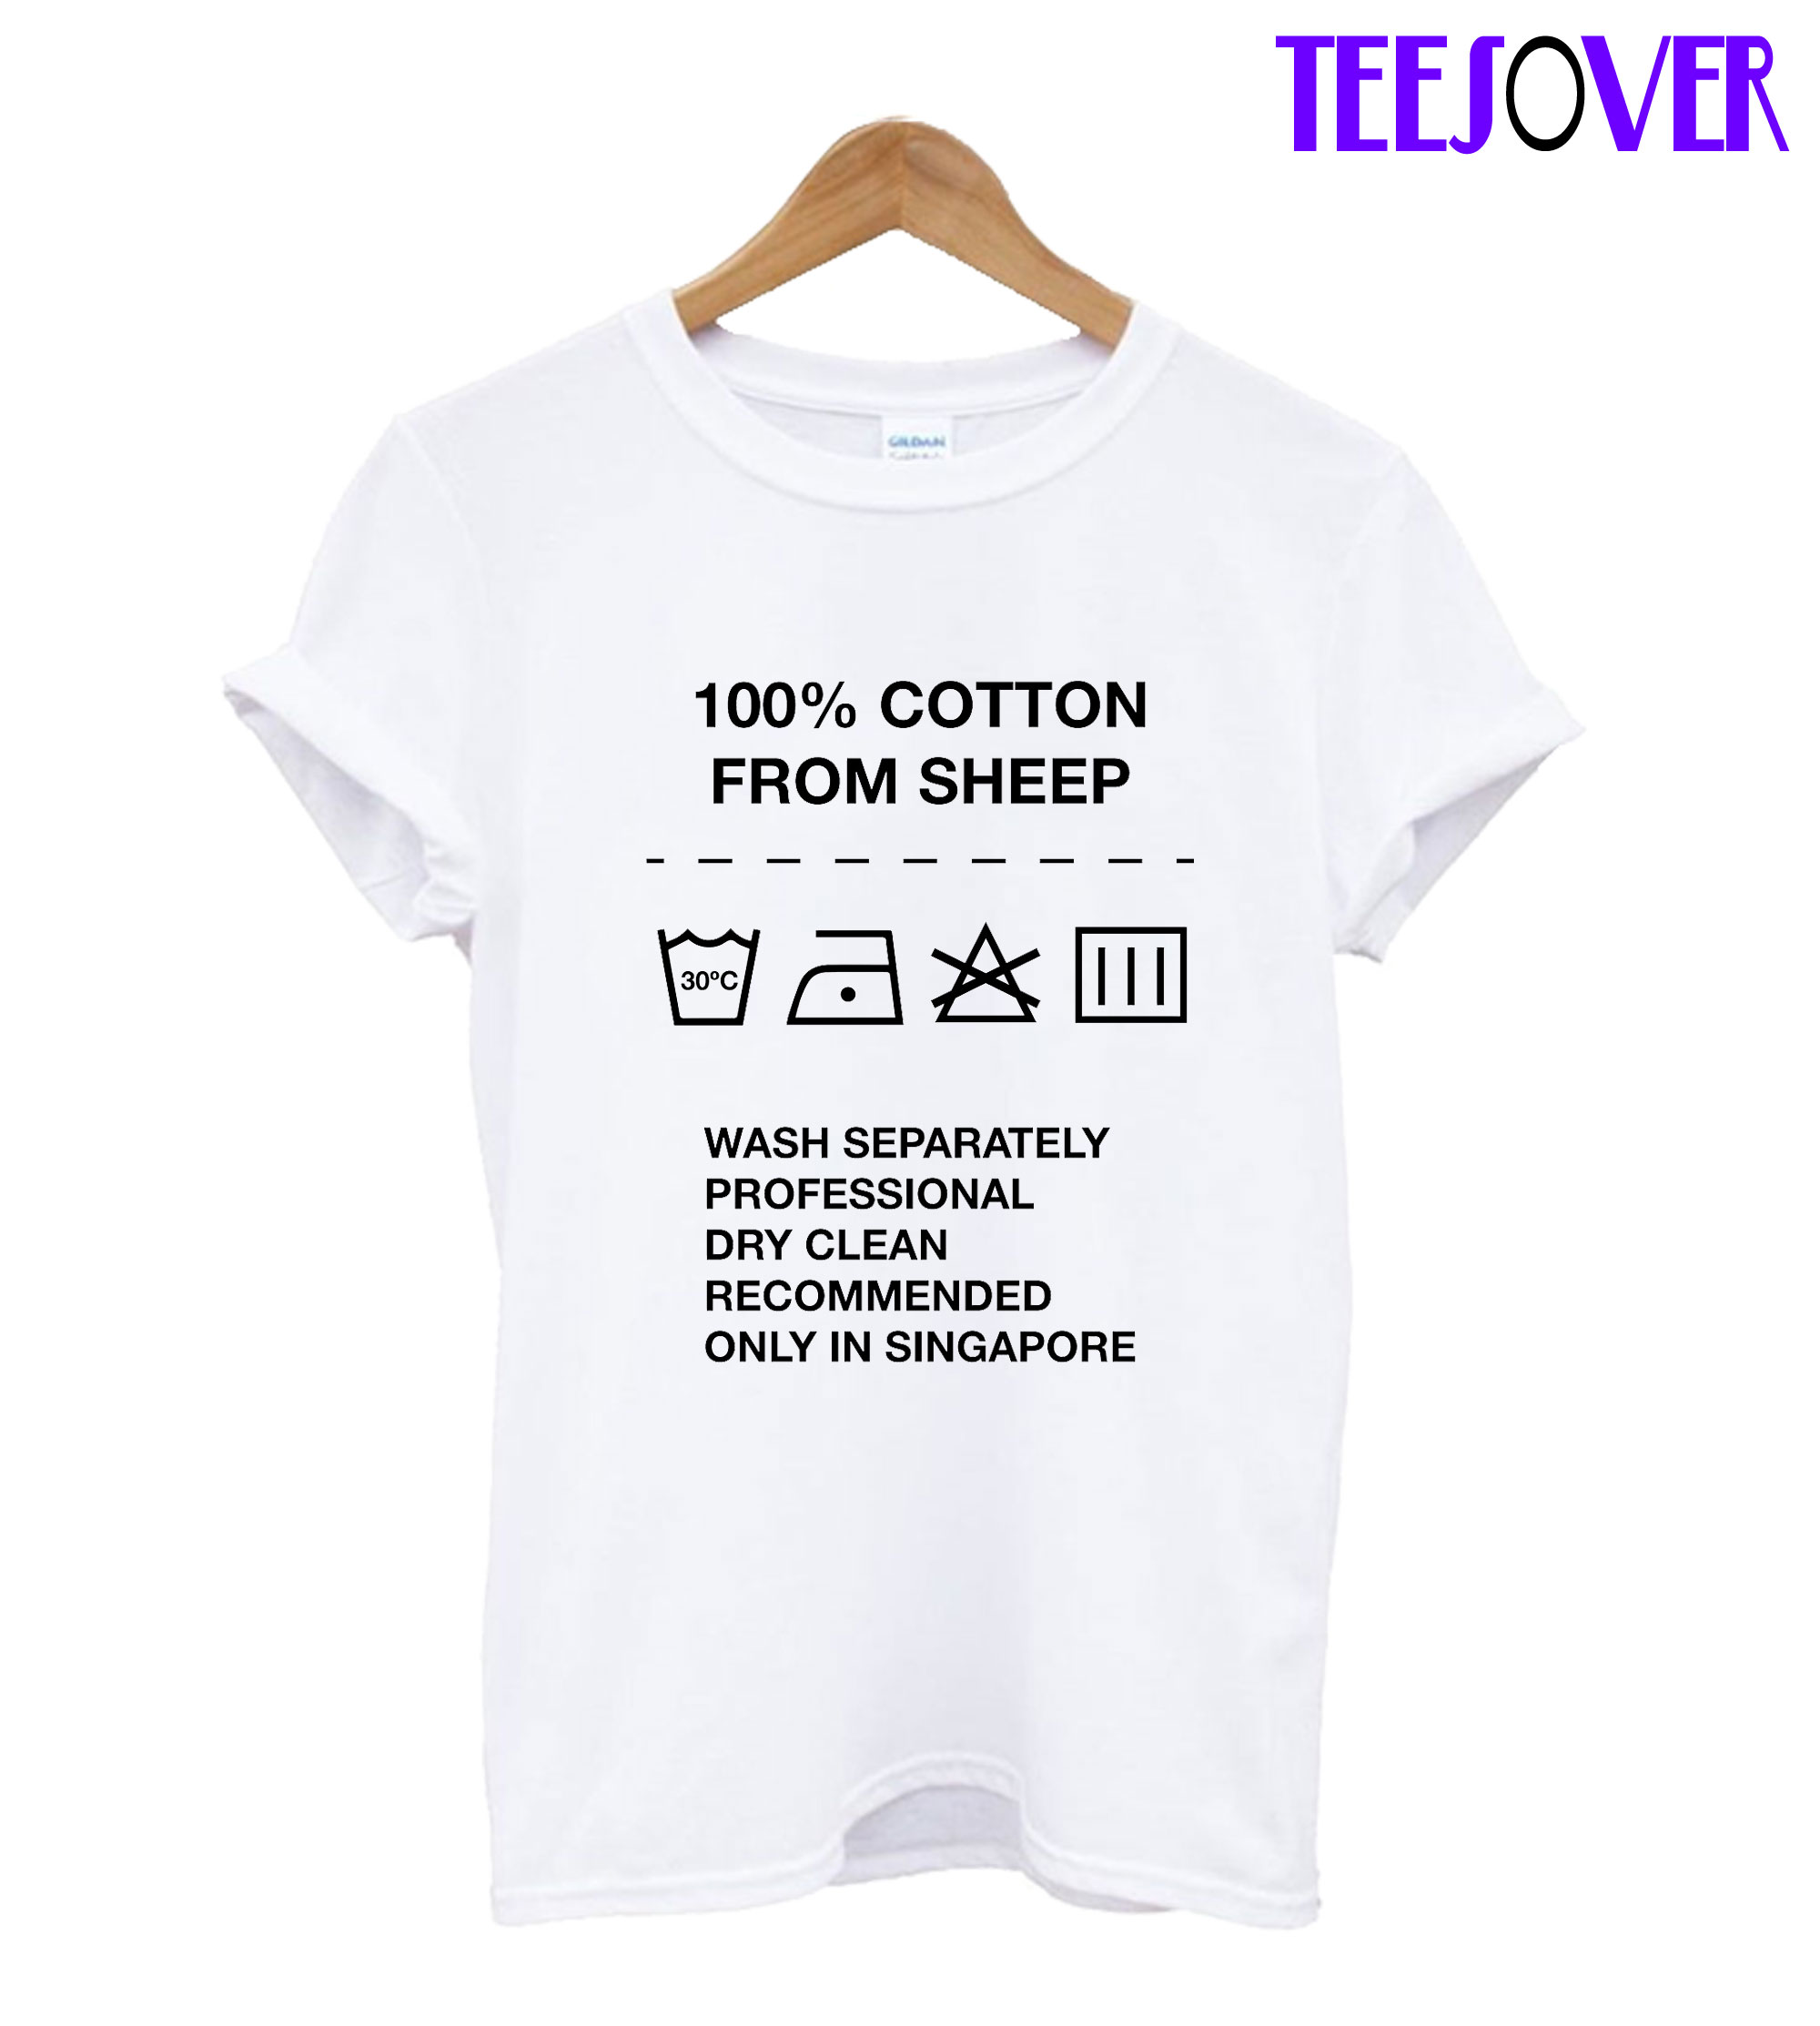 100% Cotton from Sheep T-Shirt